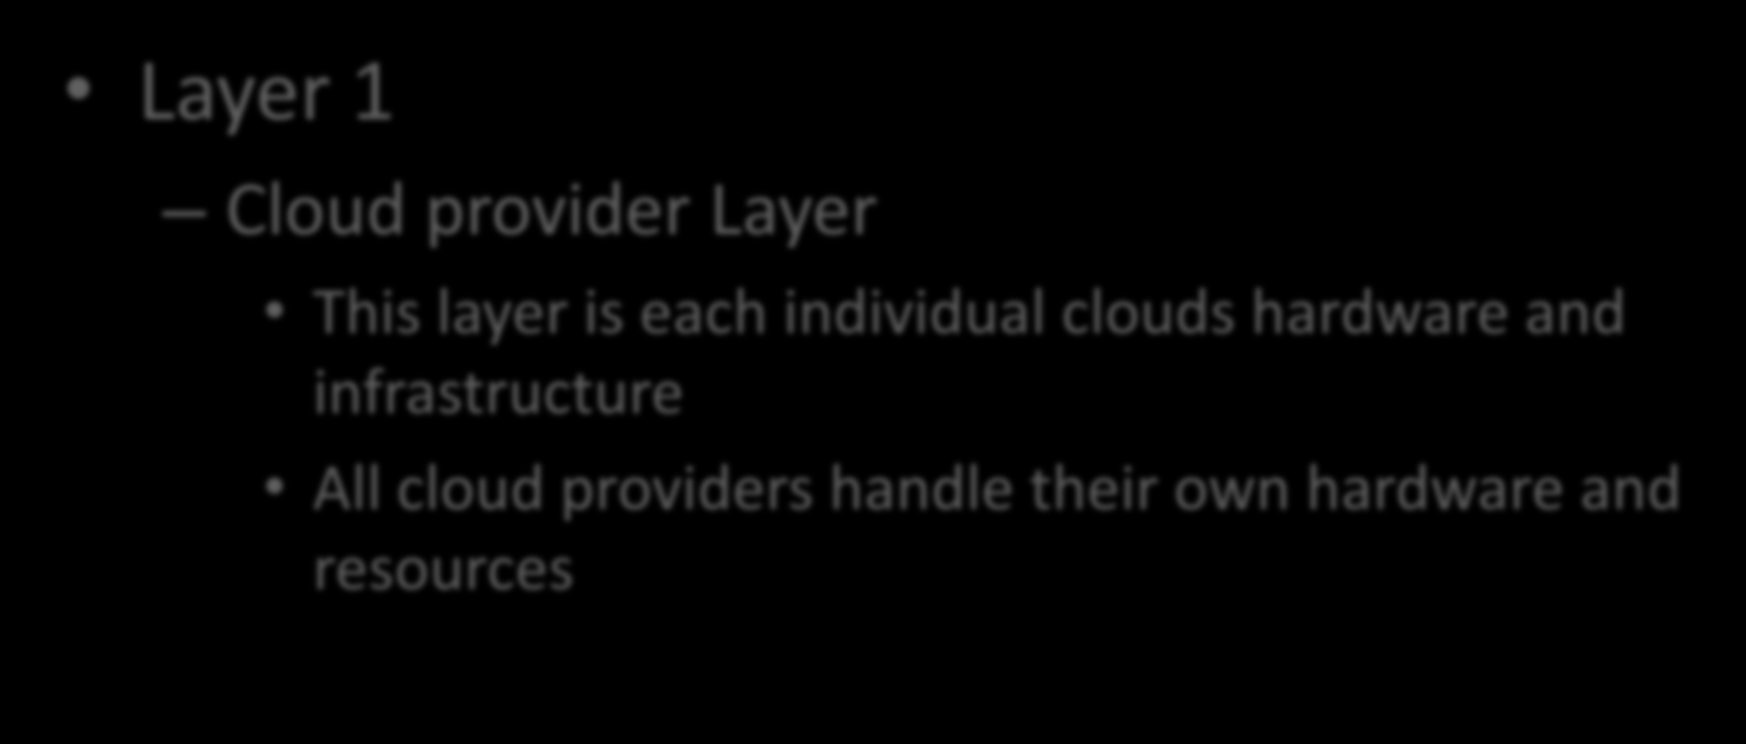 SOCCA Layers Layer 1 Cloud provider Layer This layer is each individual clouds